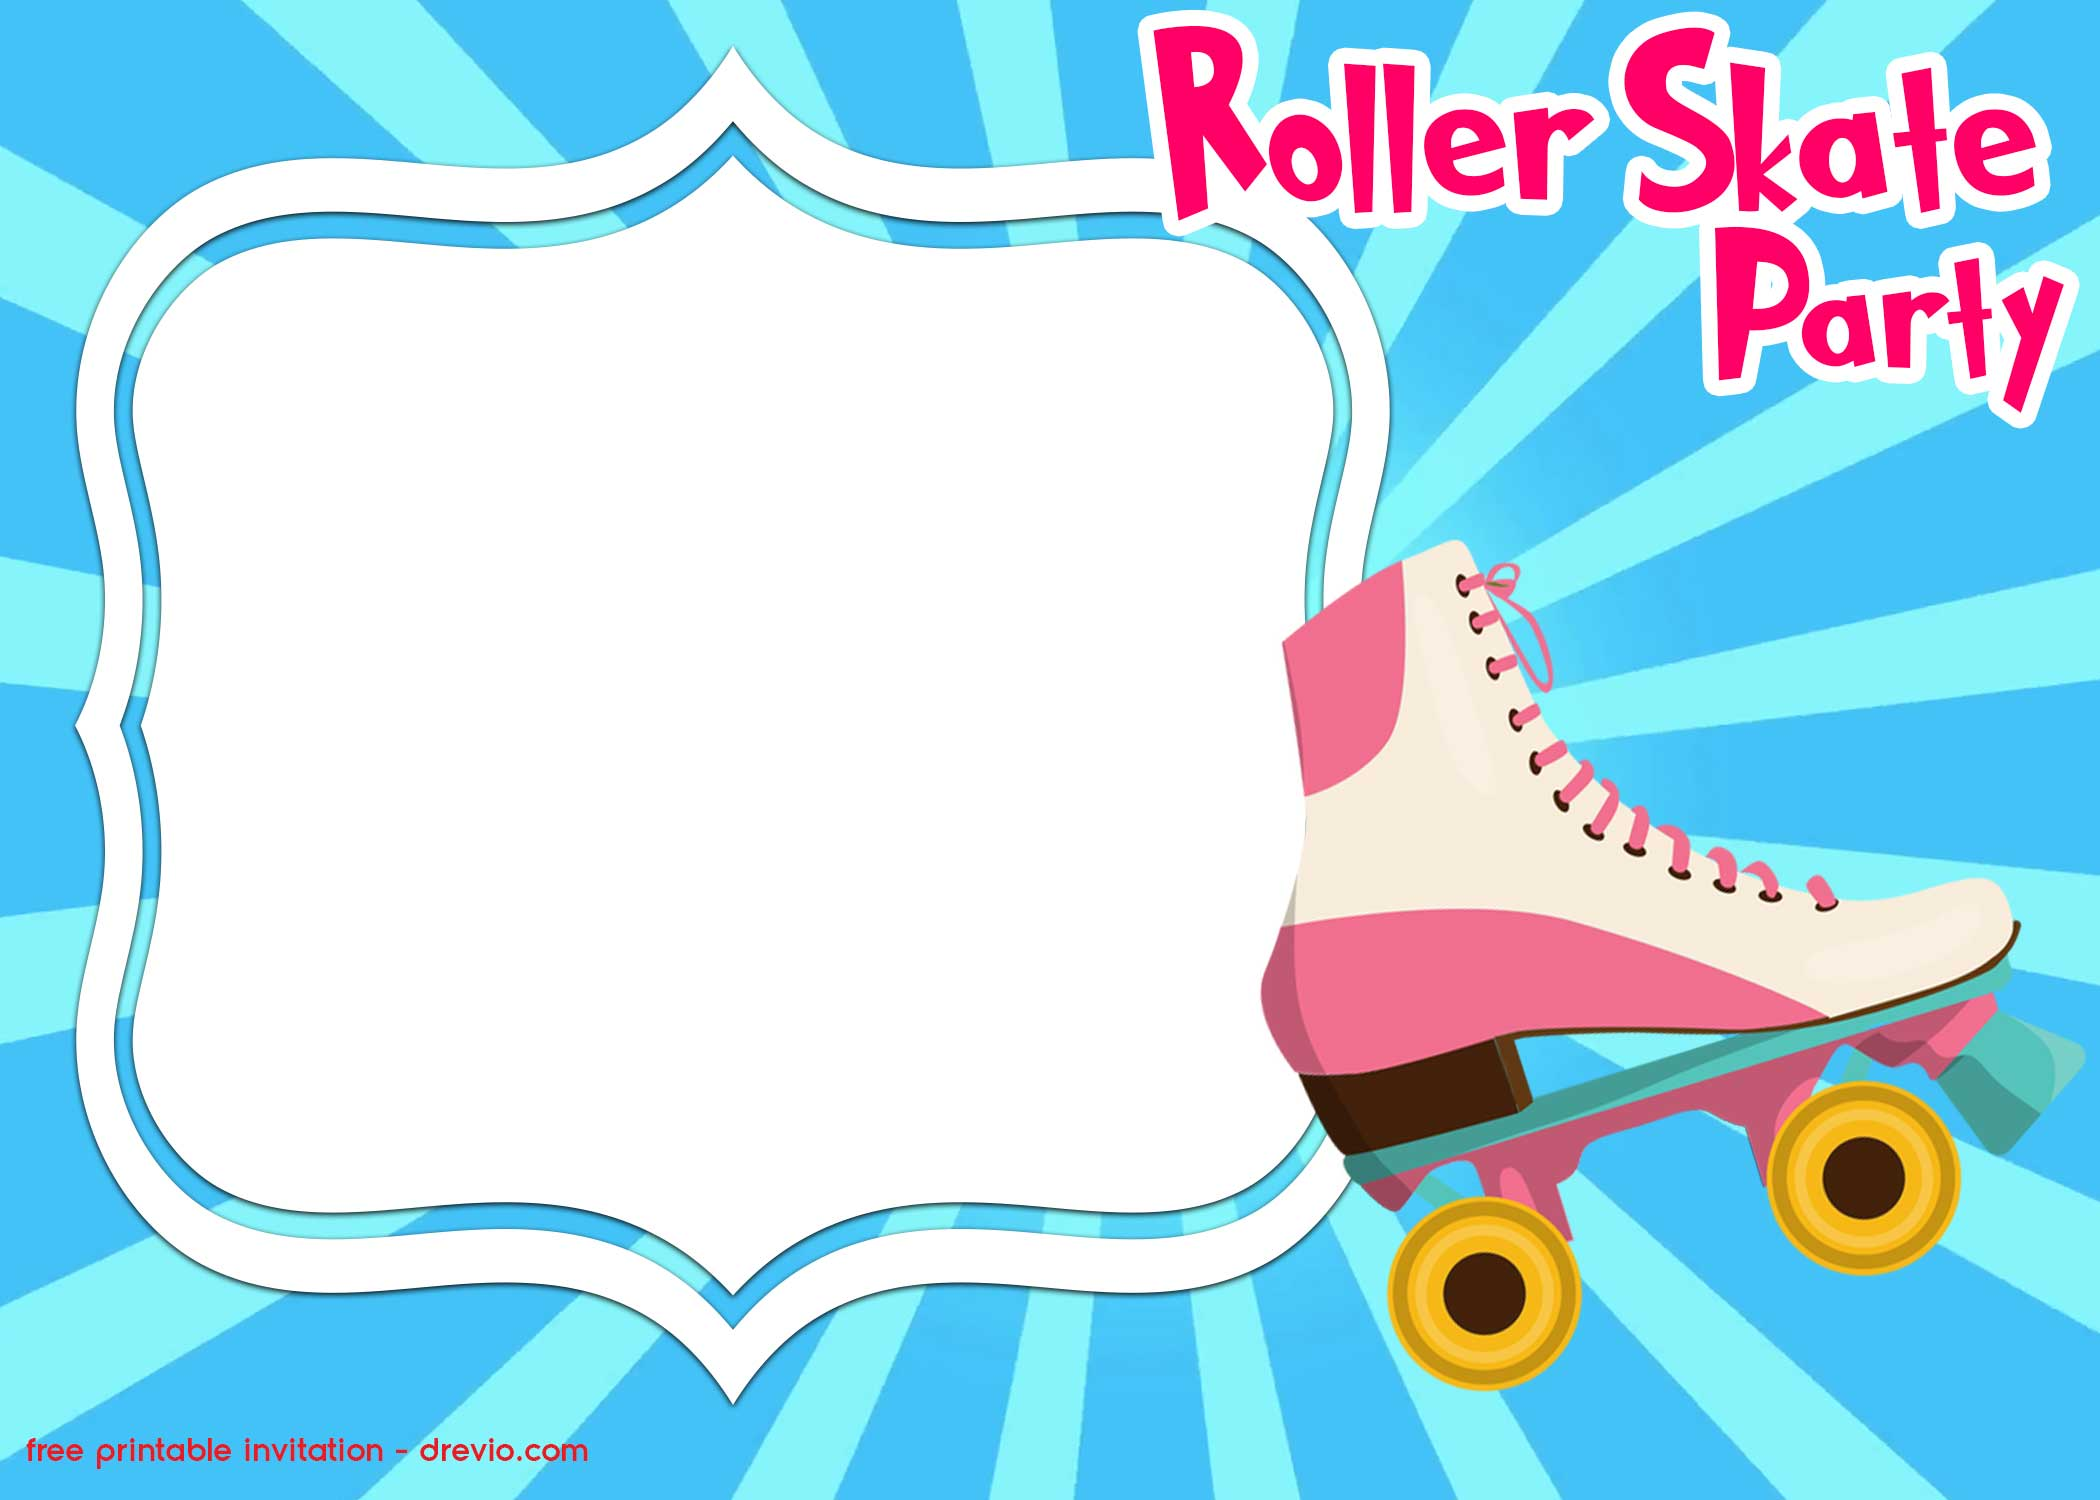 image about Free Printable Roller Skate Template identified as No cost Printable Roller Skating Invitation Template - No cost